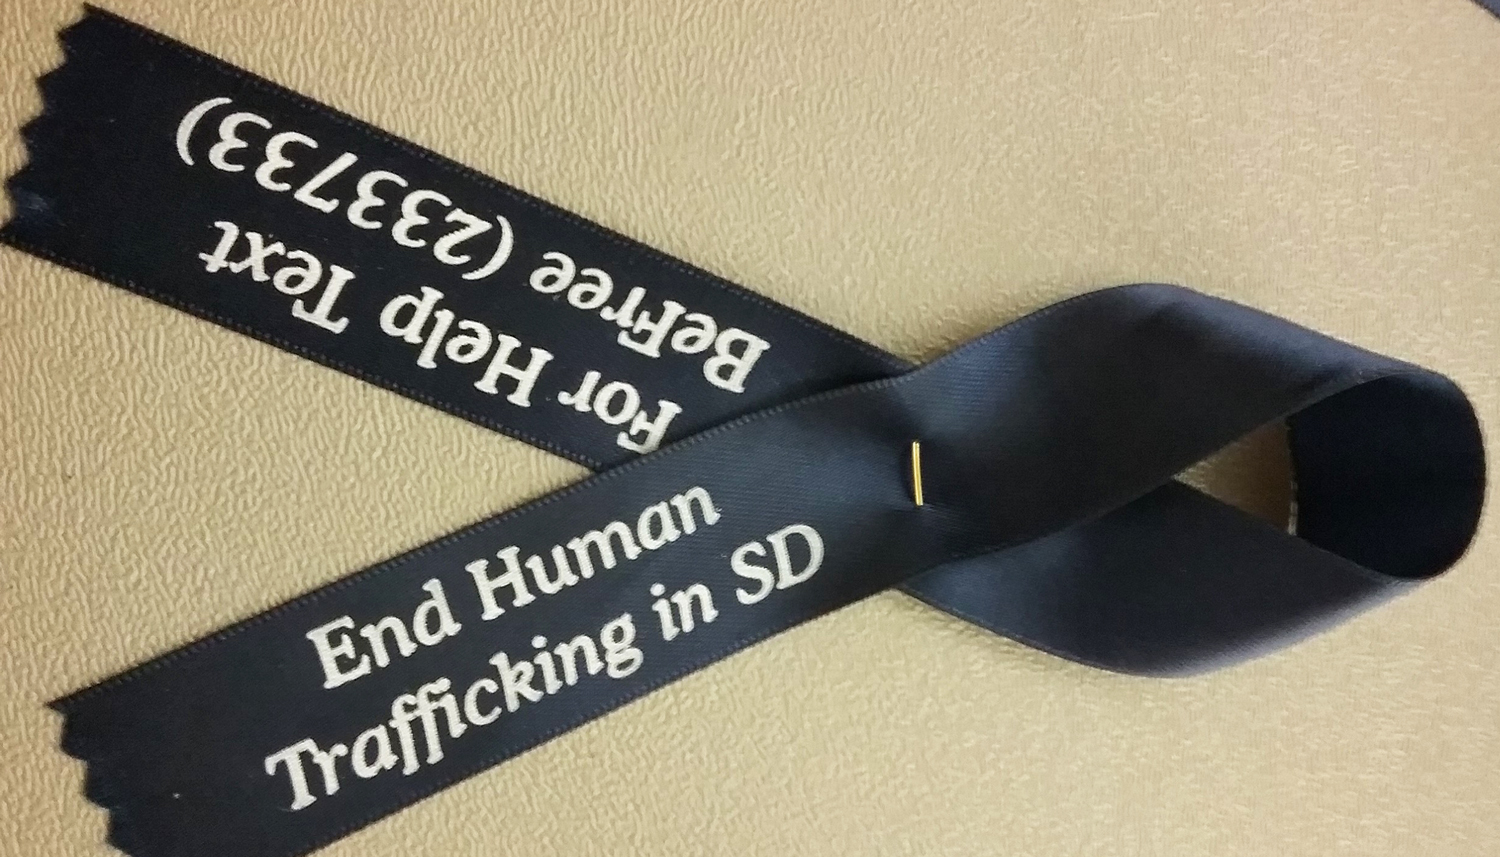 End Human Trafficking in San Diego ribbon